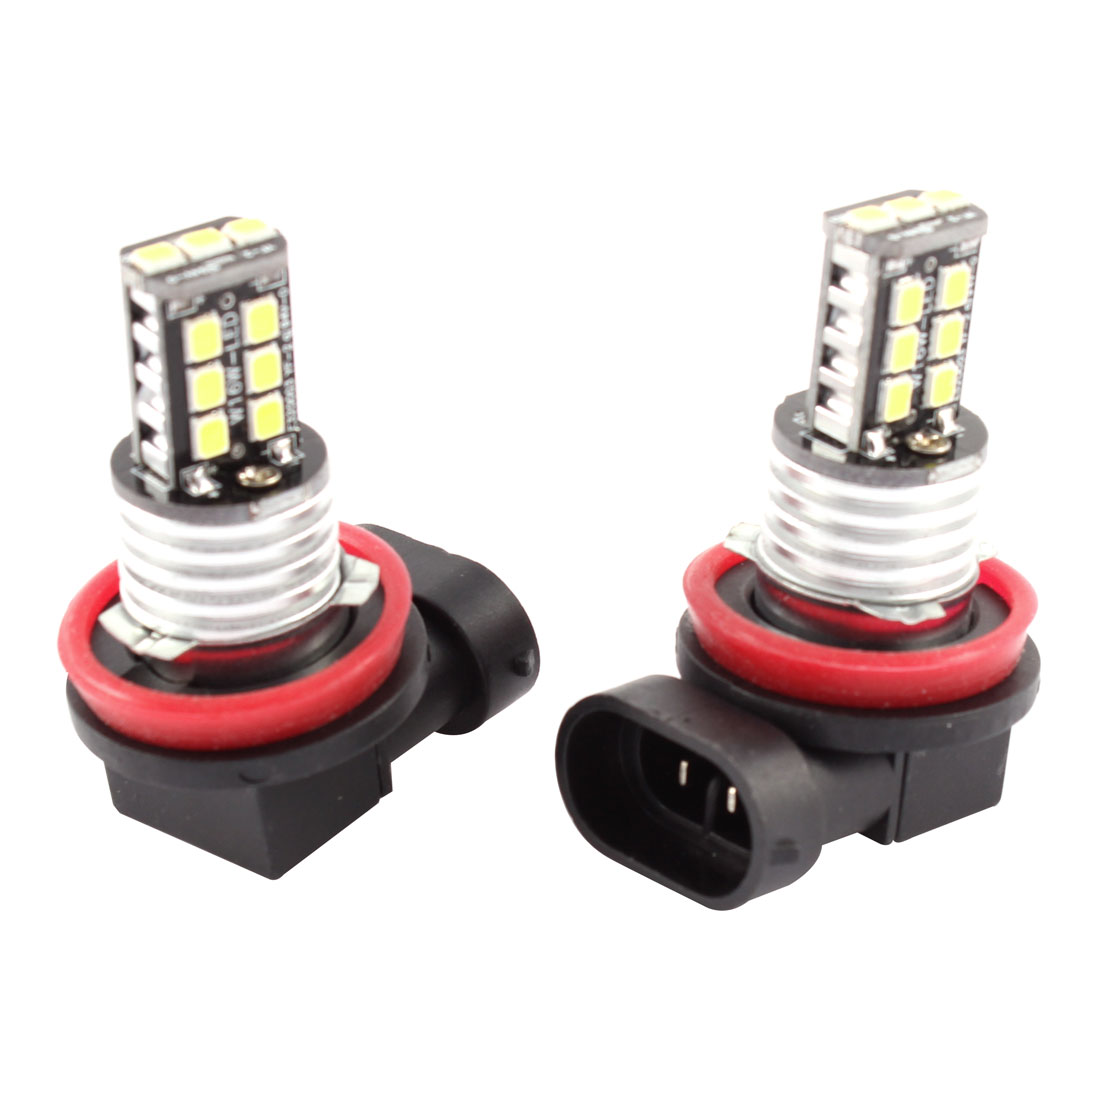 2 x H11 Socket 3528 SMD 15 LED White Foglight Light Bulb for Car Auto